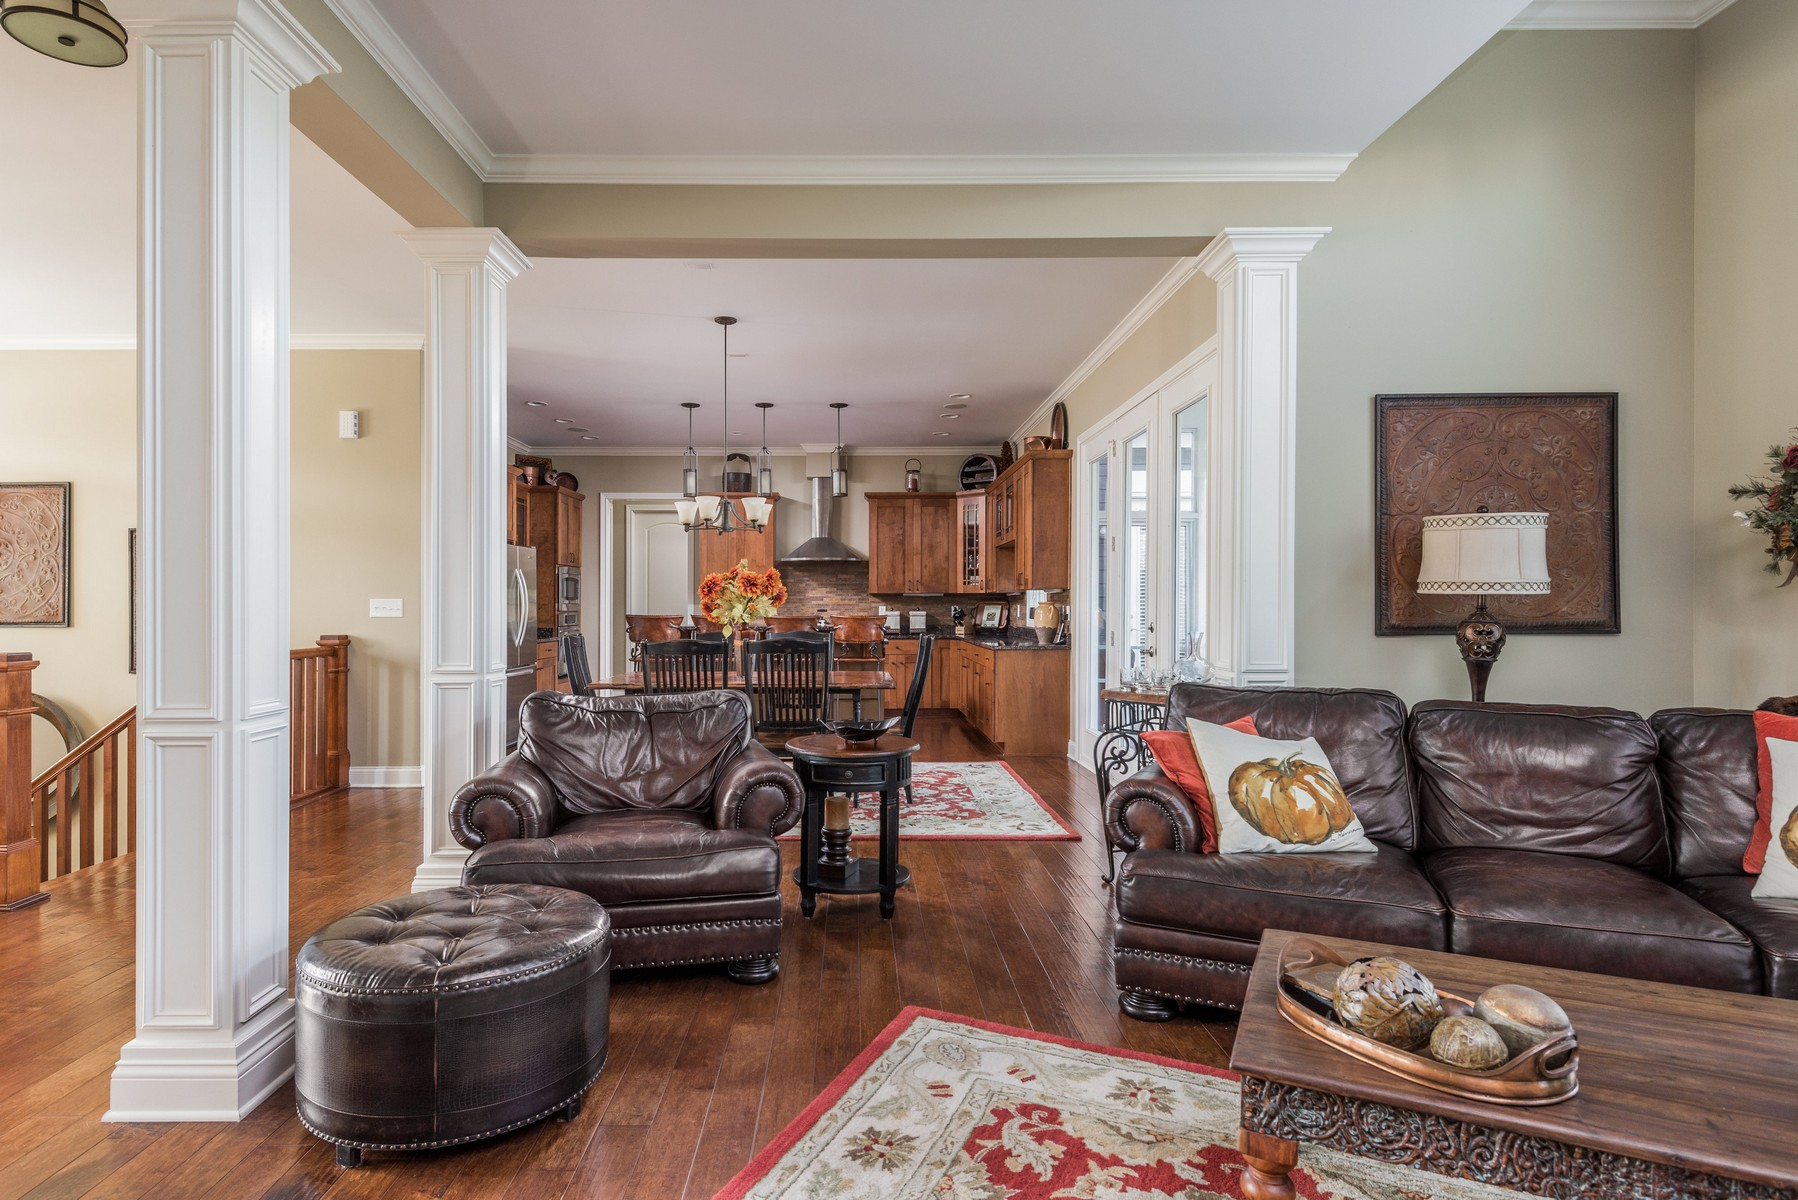 Additional photo for property listing at Elegant Ranch Home in Carmel 13211 Carmichael Lane Carmel, Indiana 46032 United States